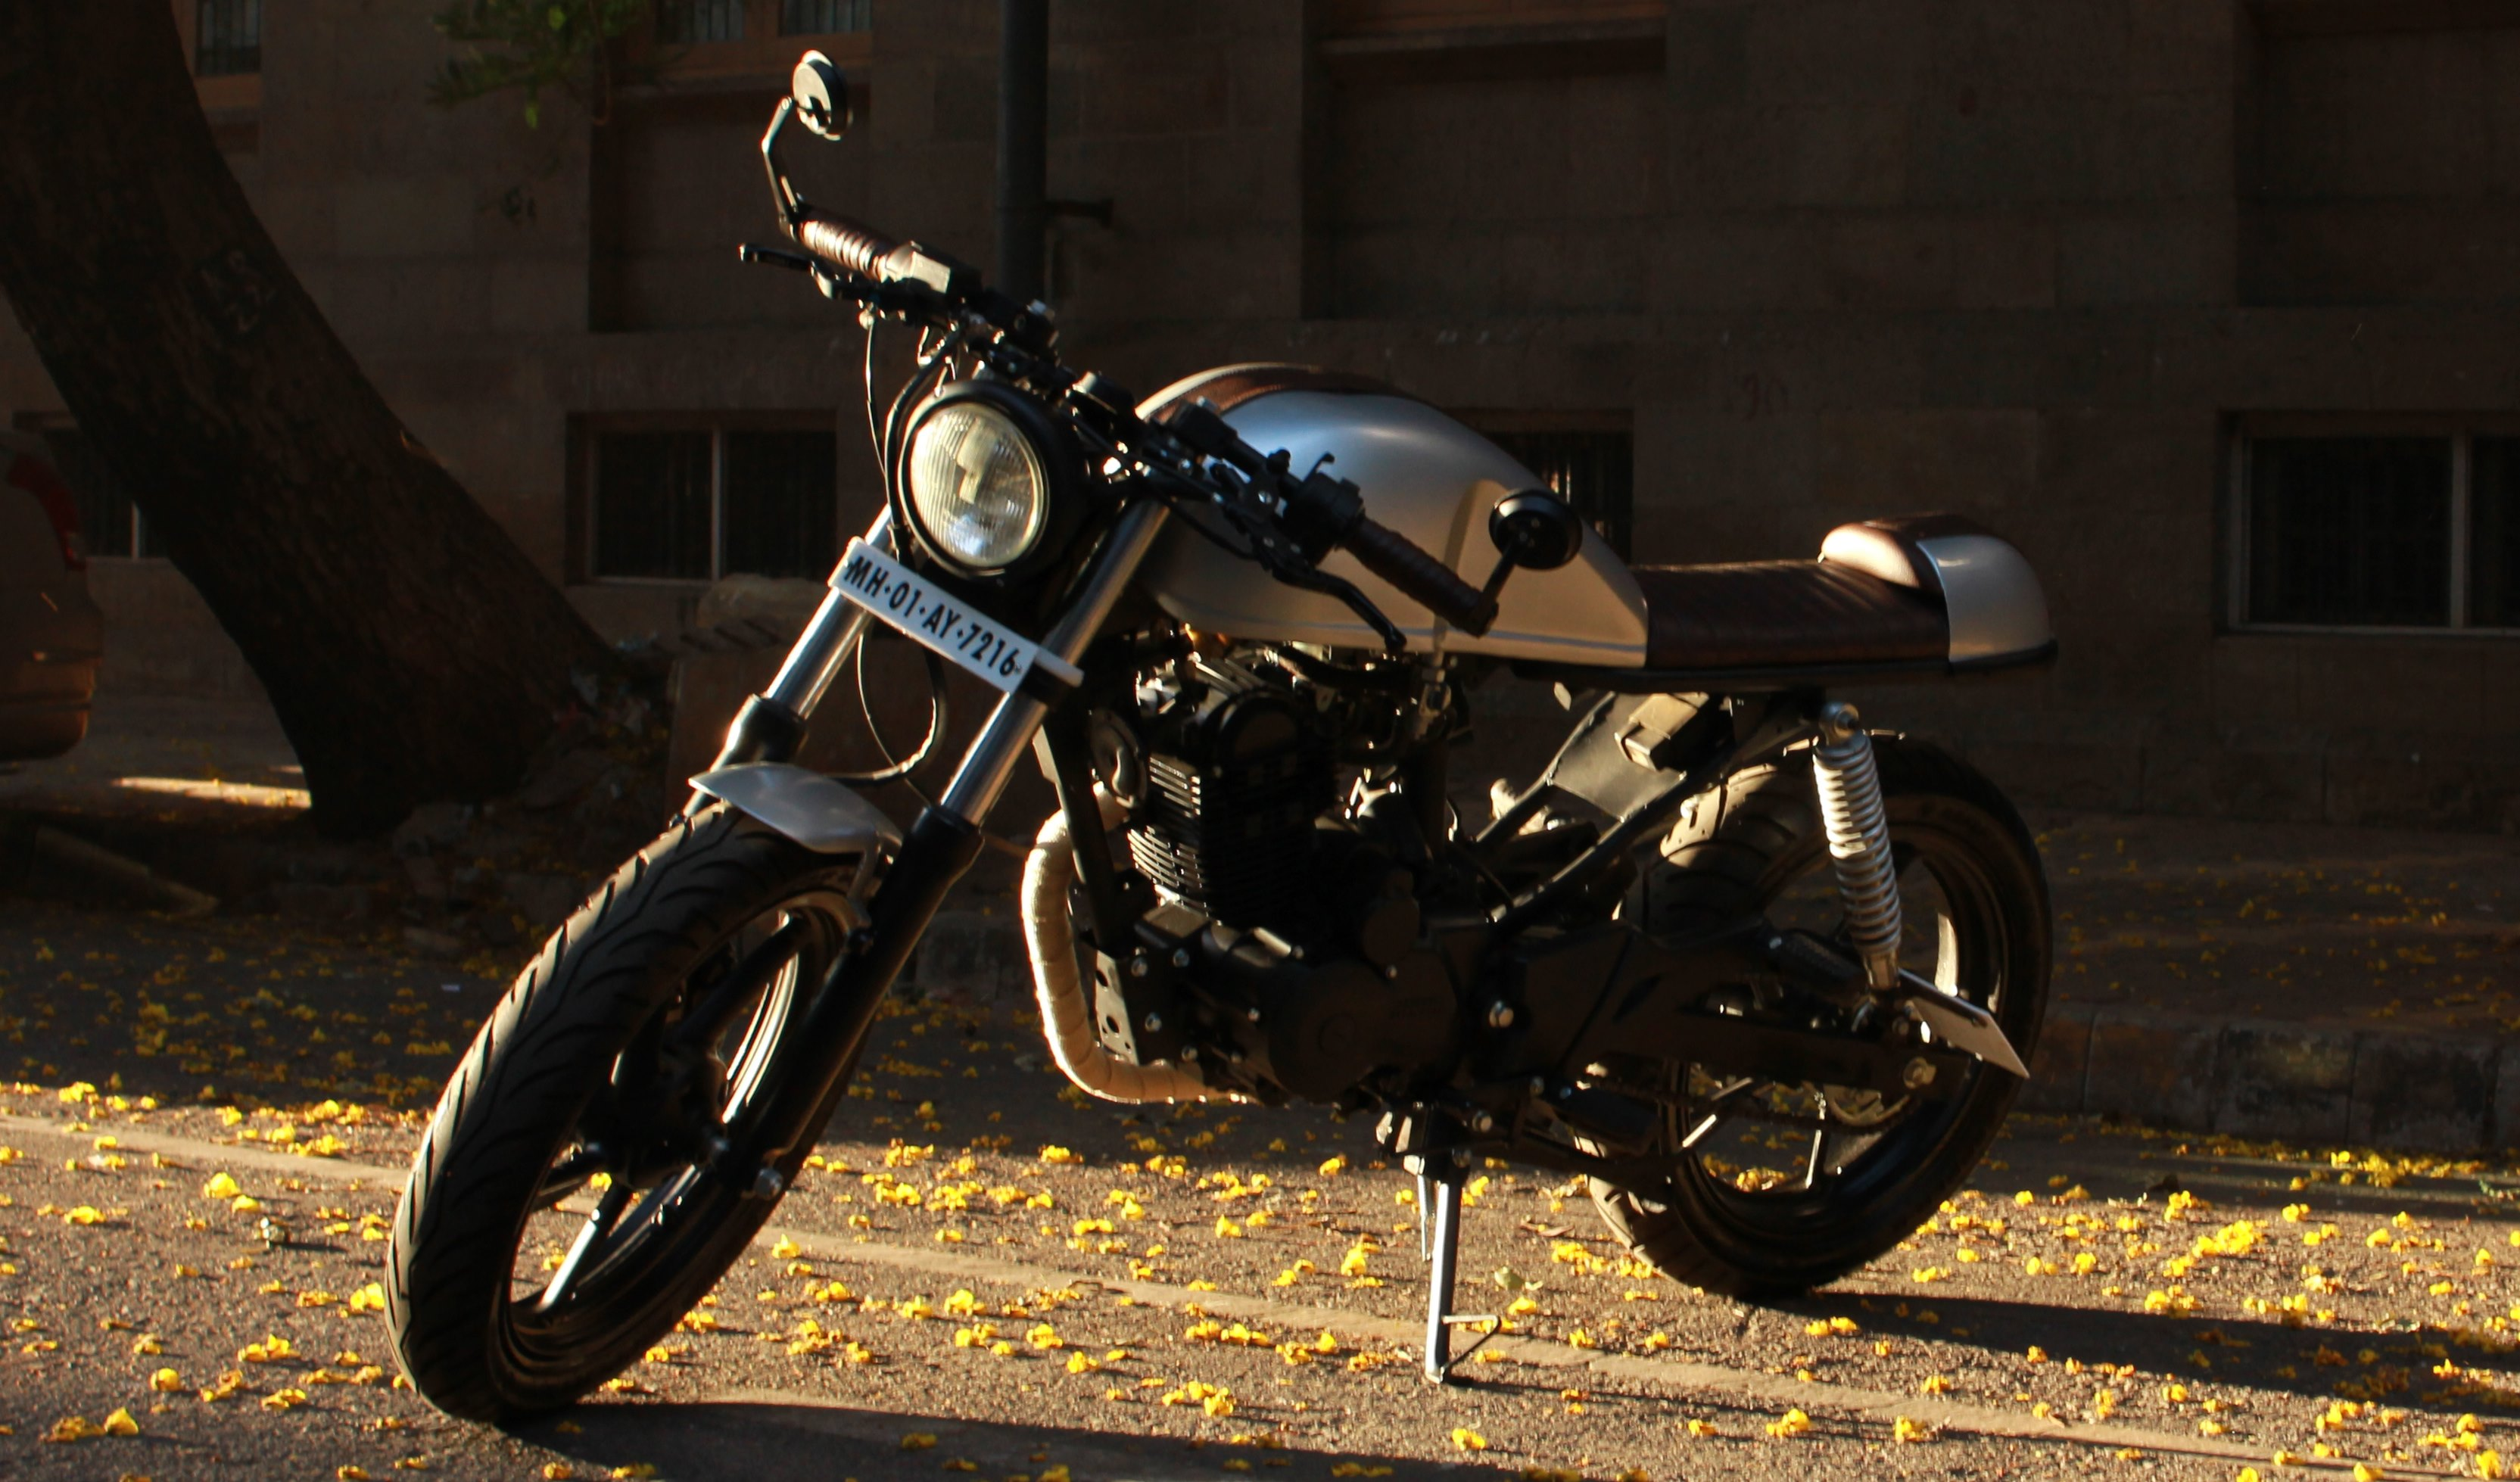 Karizma Cafe Racer by Ballard Customs - an amateur's build